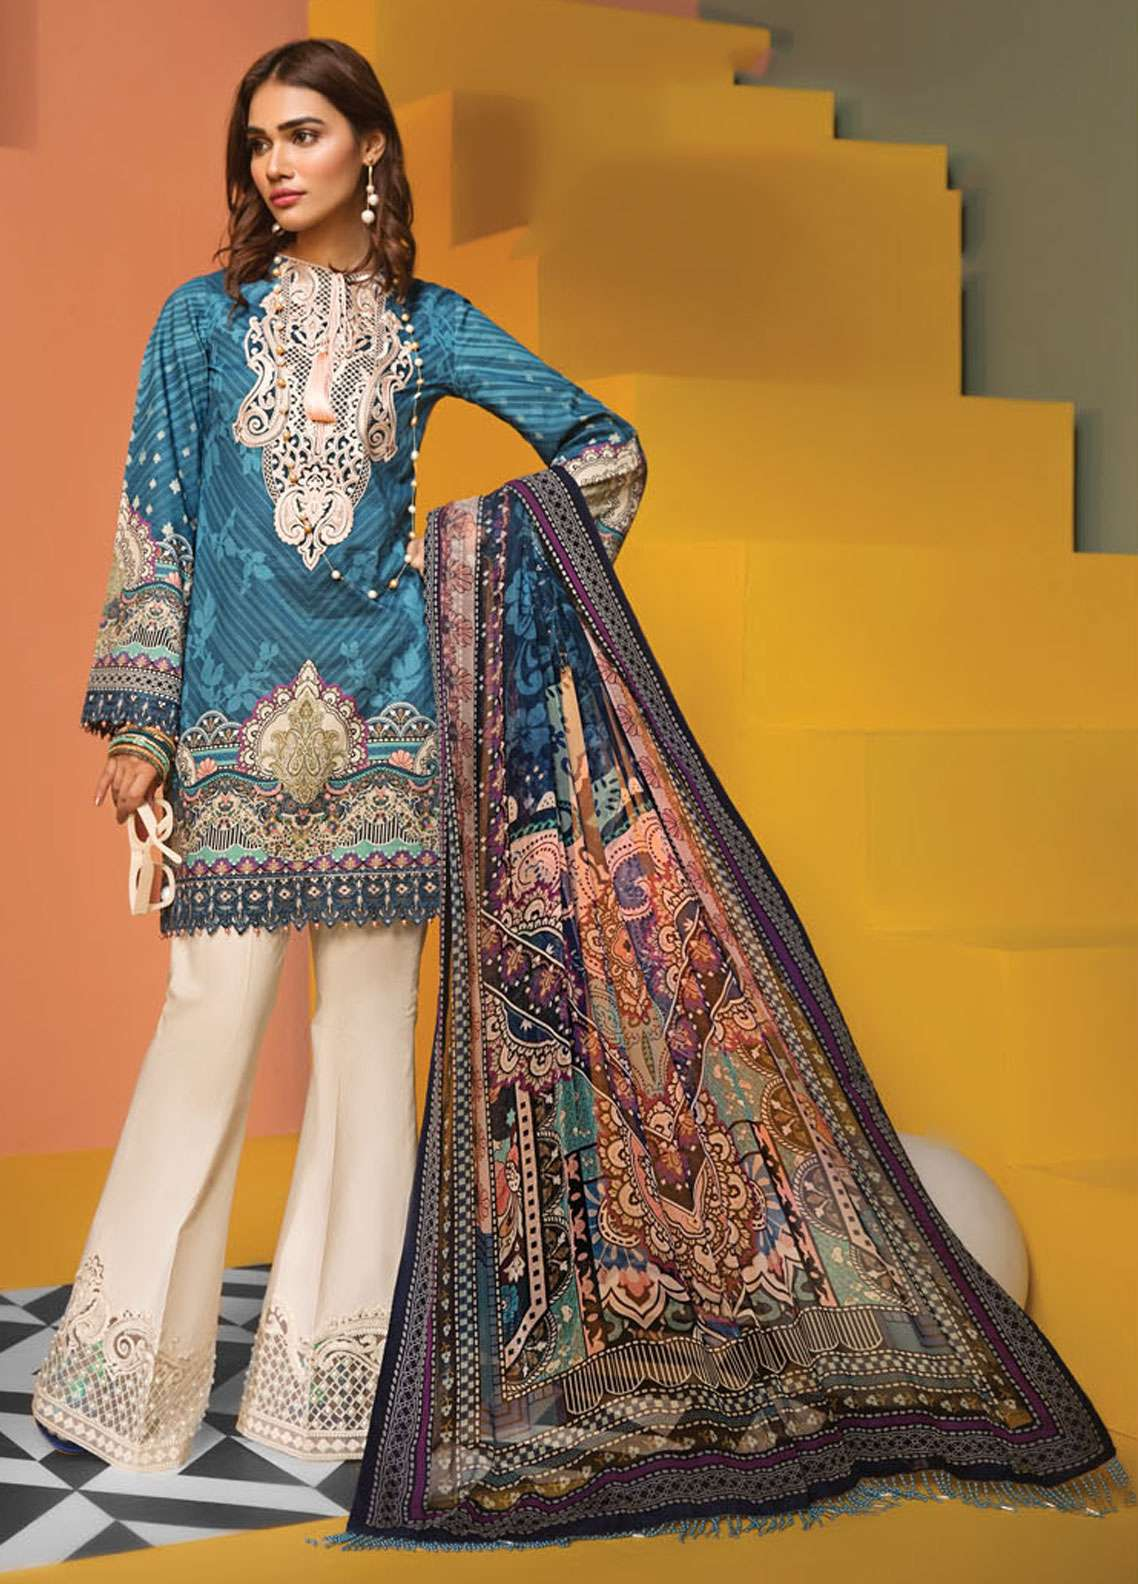 Anaya By Kiran Chaudhry Embroidered Lawn Unstitched 3 Piece Suit AKC19VL 07 CLARA - Spring / Summer Collection